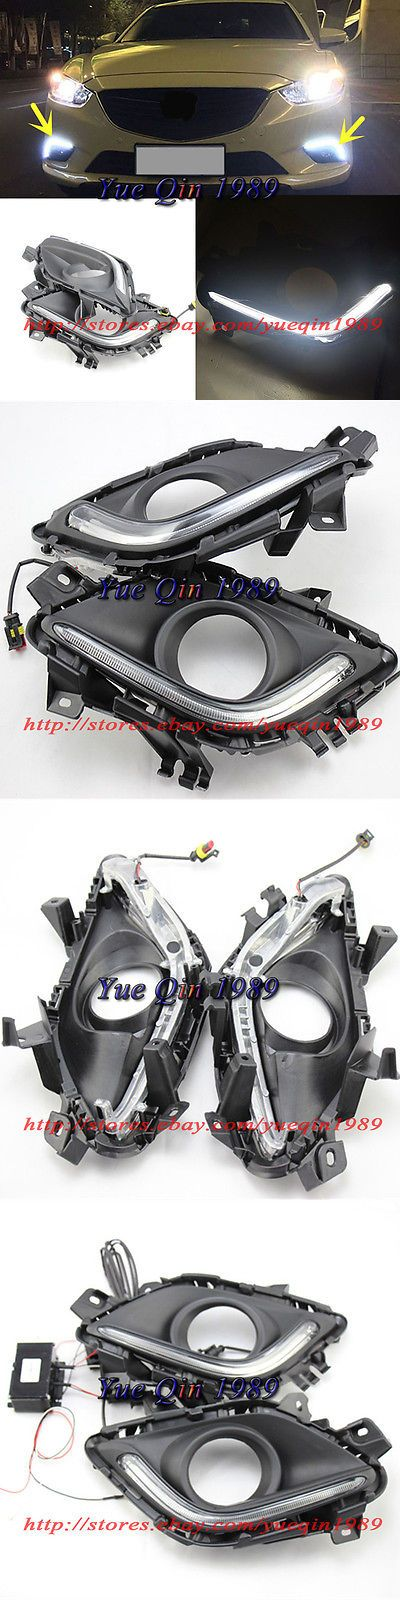 Motors Parts And Accessories: 1 Set Led White Daytime Day Fog Light Drl Lamp For Mazda 6 Atenza 2014-2016 -> BUY IT NOW ONLY: $92.99 on eBay!